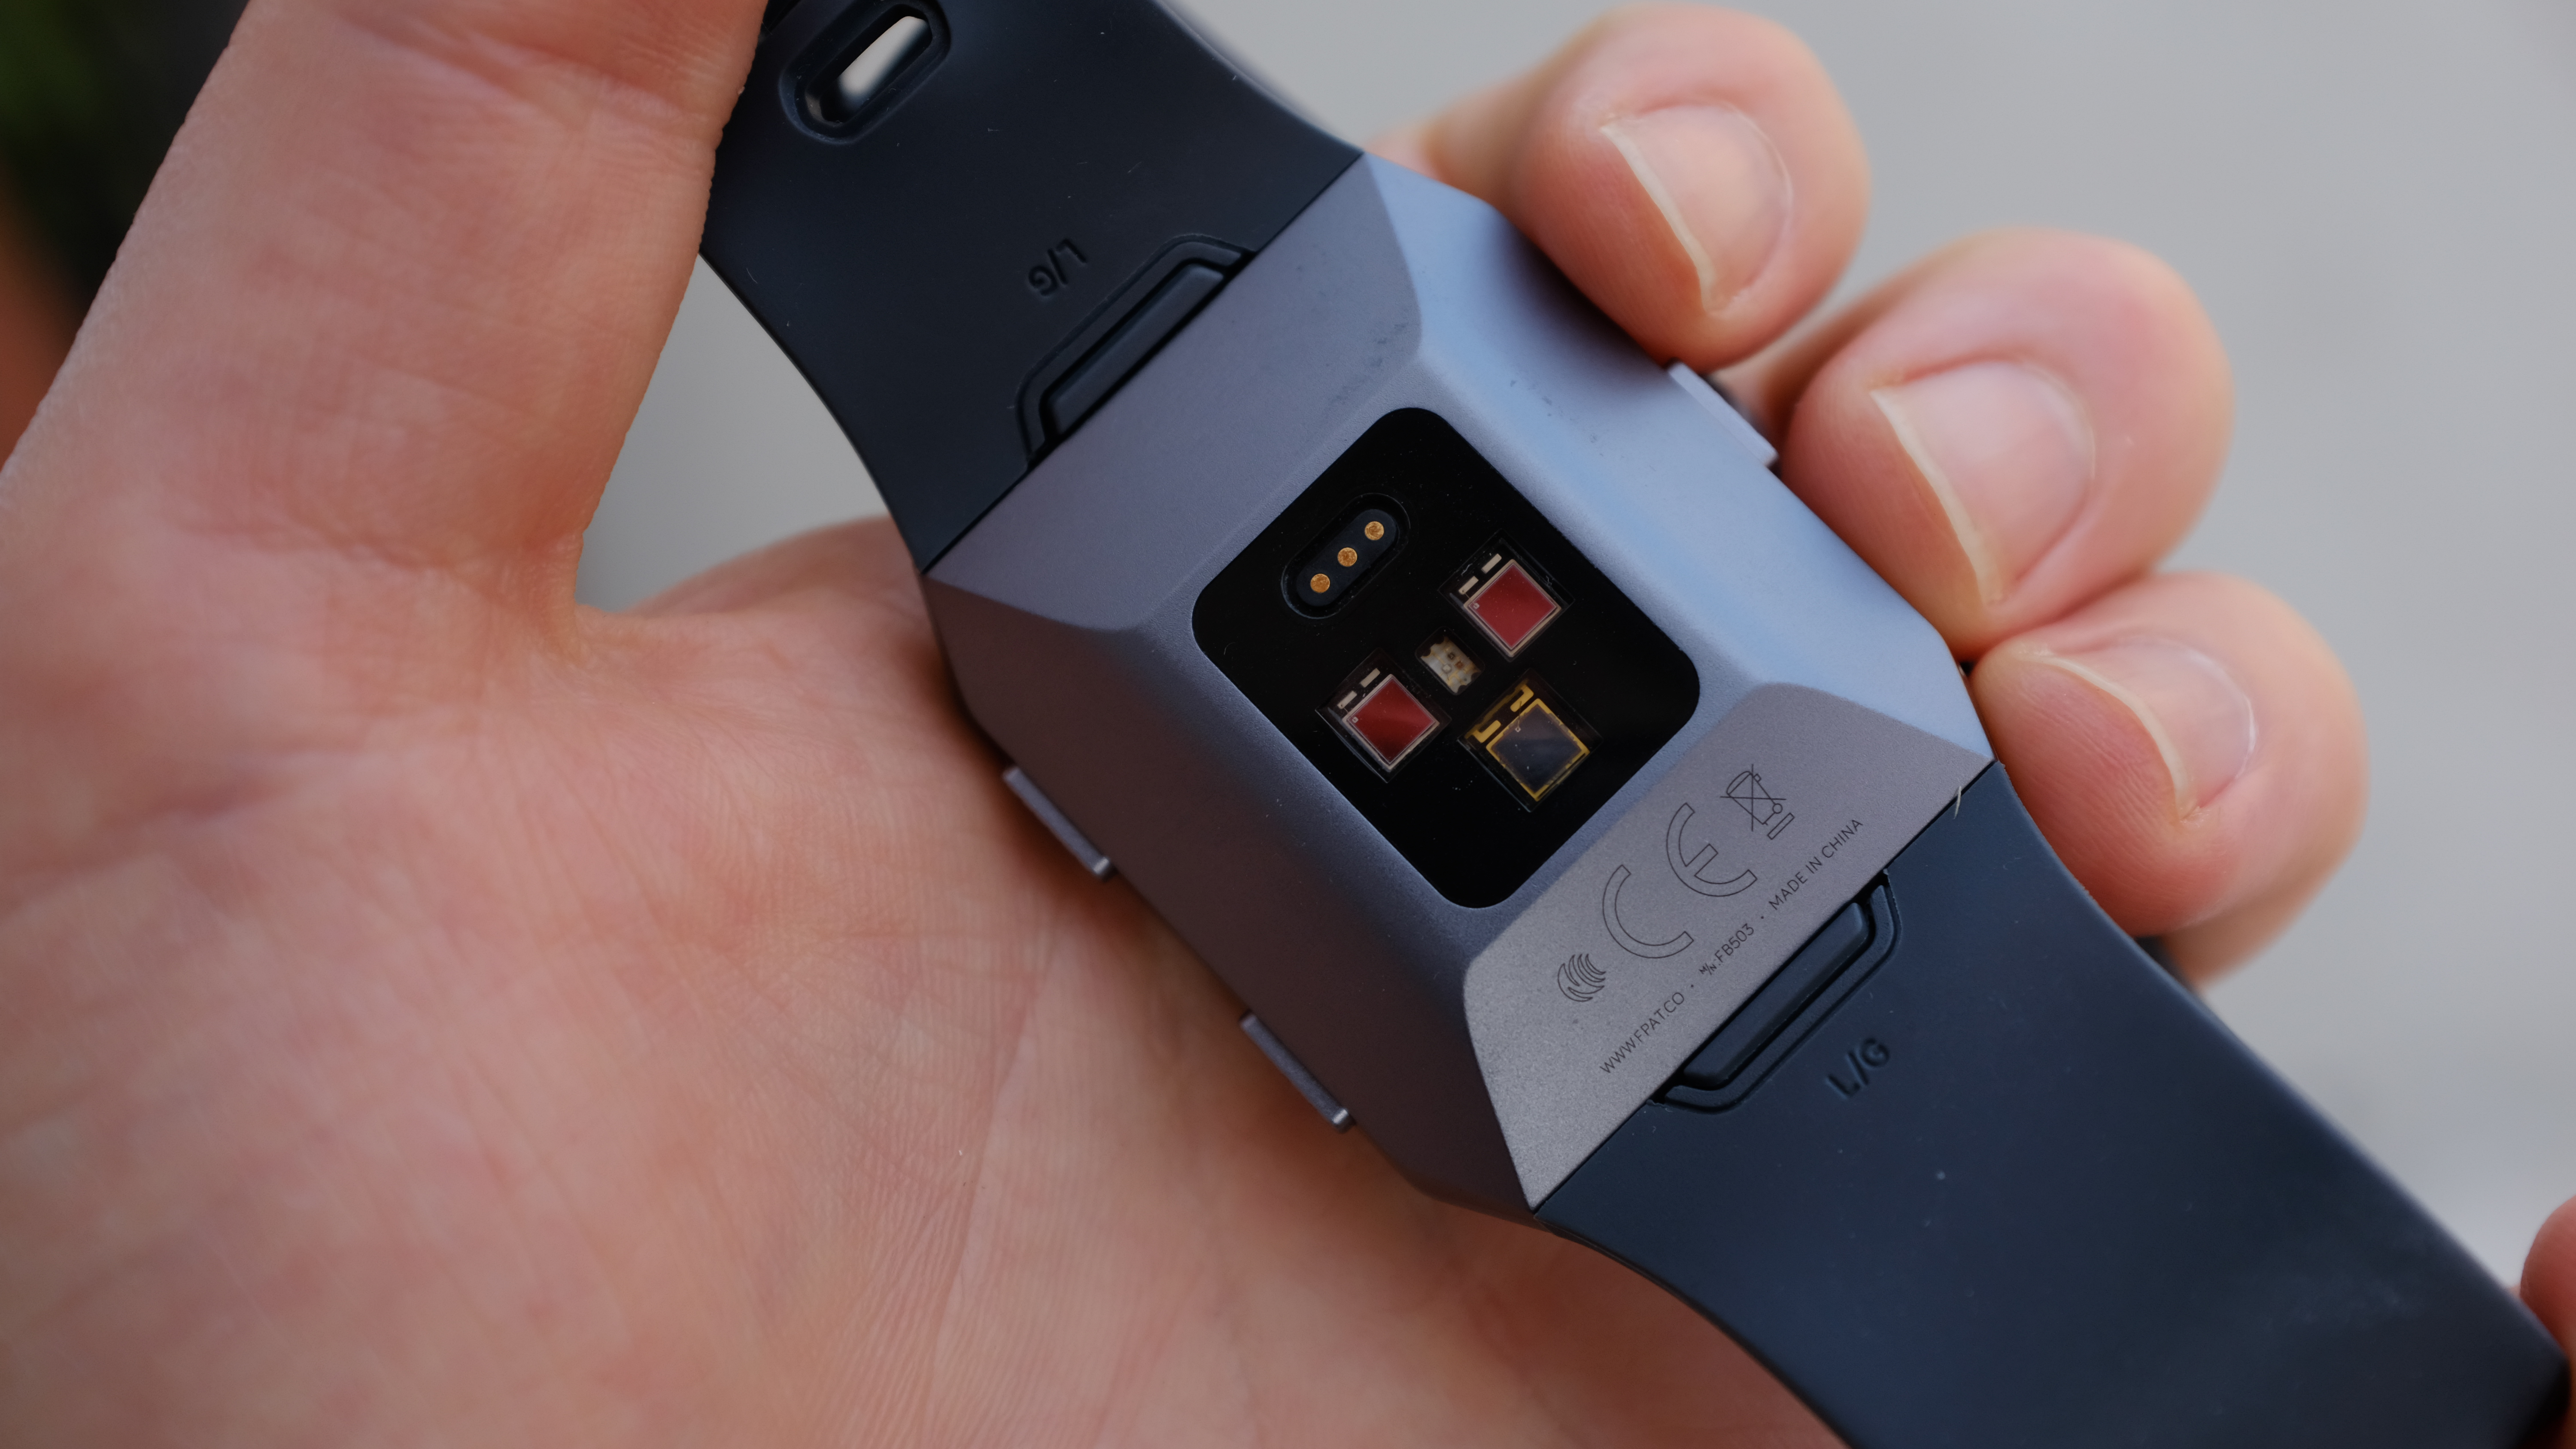 Fitbit Is Betting Big On The Ionic Smartwatch Techcrunch Pebble Smart Watch Will Include A Flexible Circuit Board Black And Gray Options Are Much Better Looking Suited To Products Design Minimalism Has Long Flat Which Curves Almost